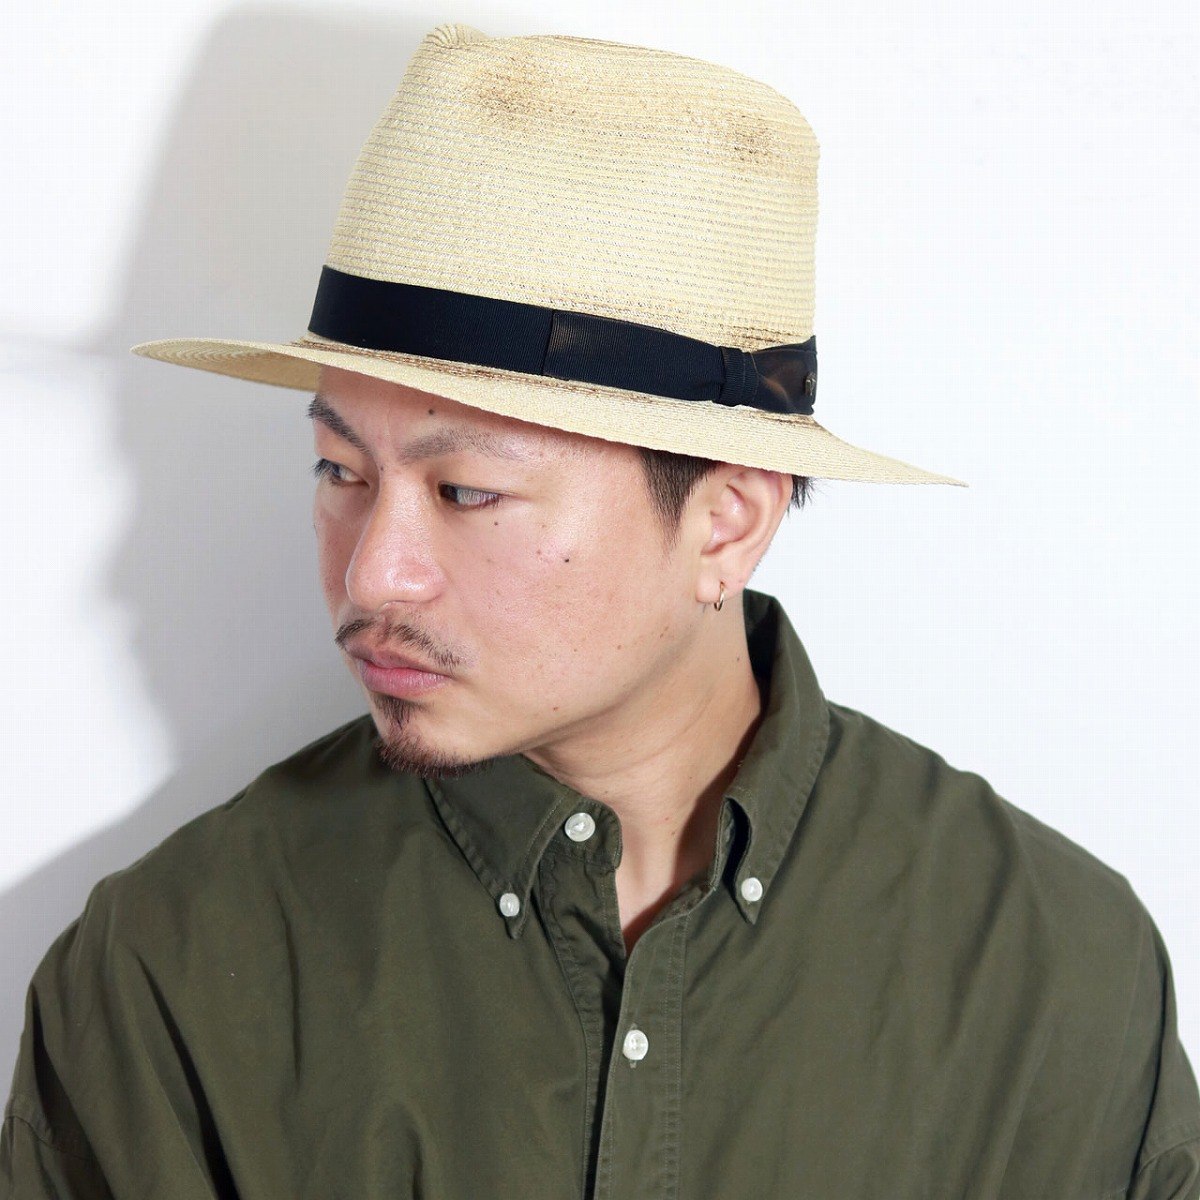 b02a9647 Straw Hat men's racal Hat spring summer local burner processing Hat vintage  Hat racal made in Japan blade turu Hat vintage turu Hat Caps hats hemp ...